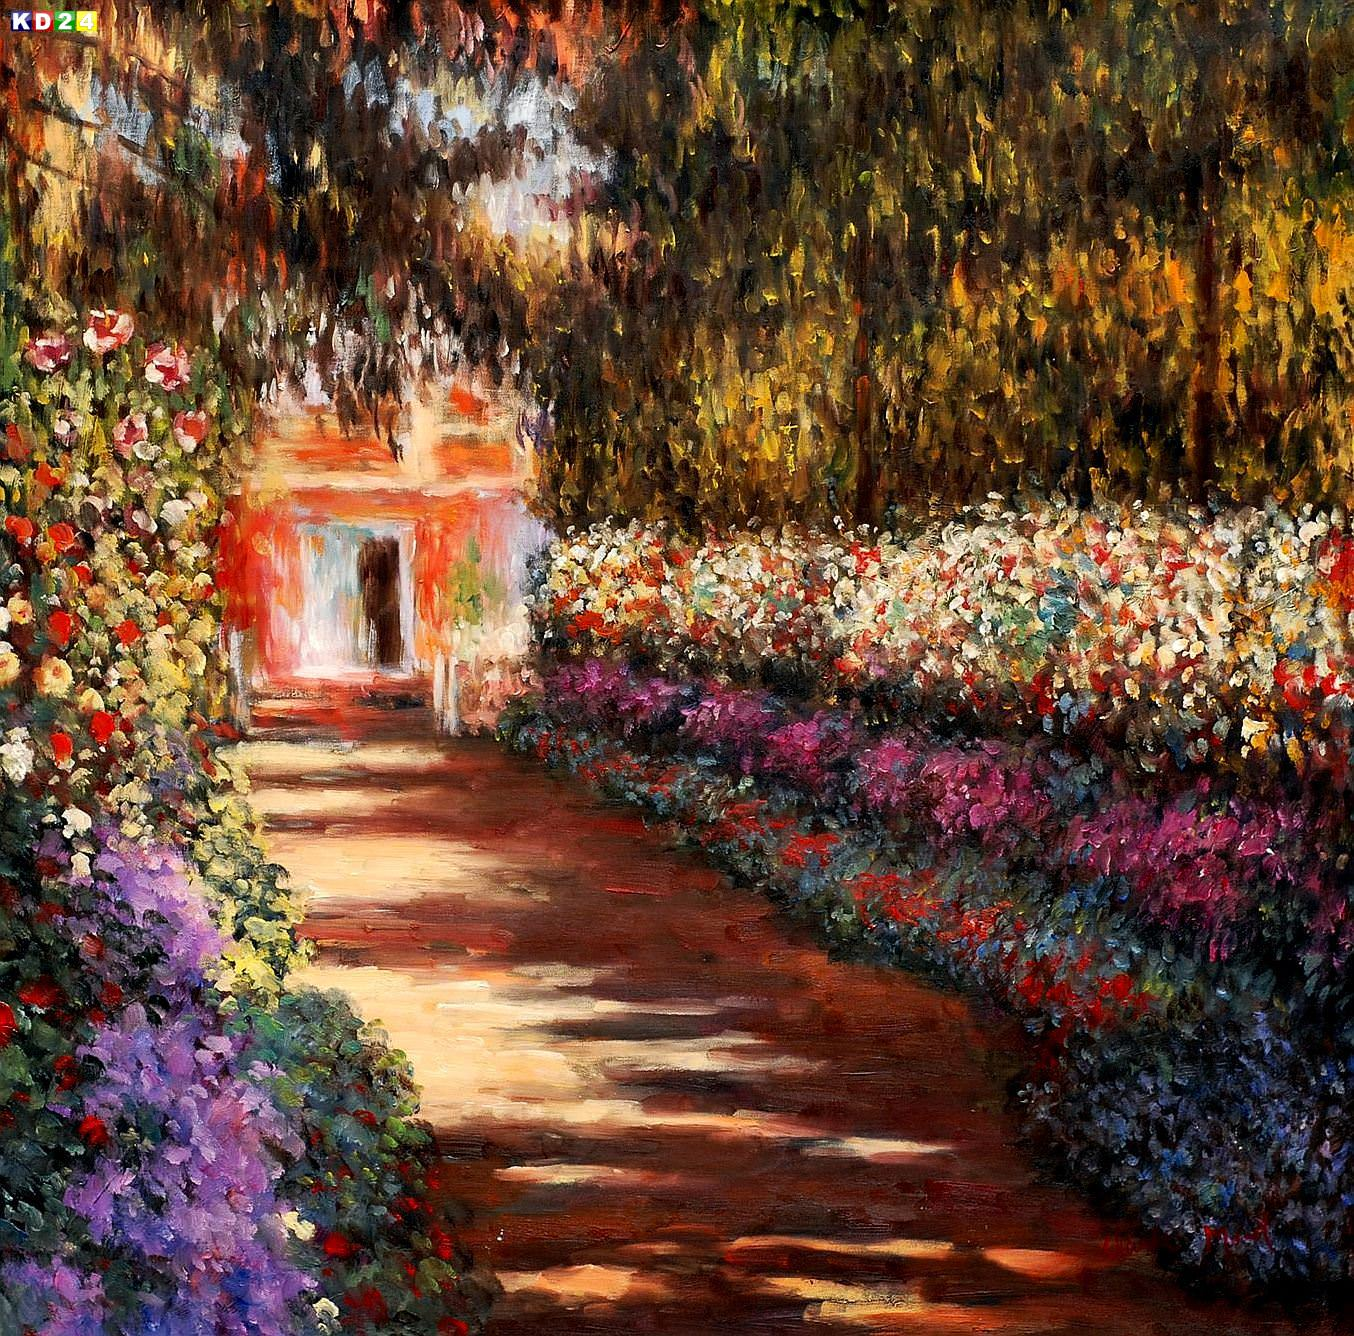 Claude Monet - Blumengarten in Giverny g82946 80x80cm lbild handgemalt